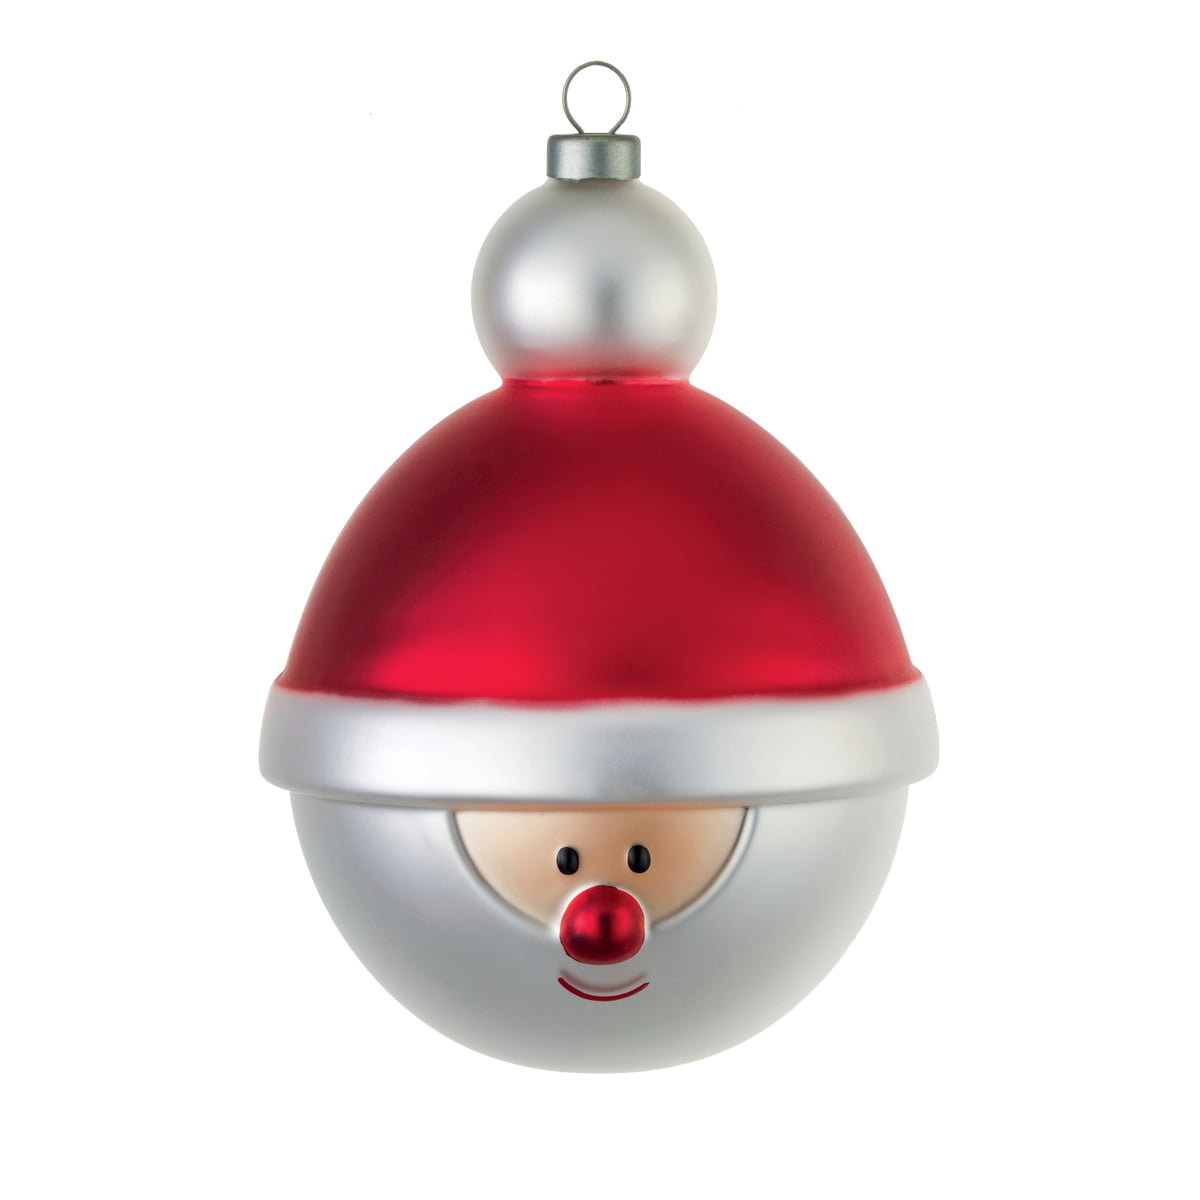 The A di Alessi - Christmas Tree Bauble, Santa Claus